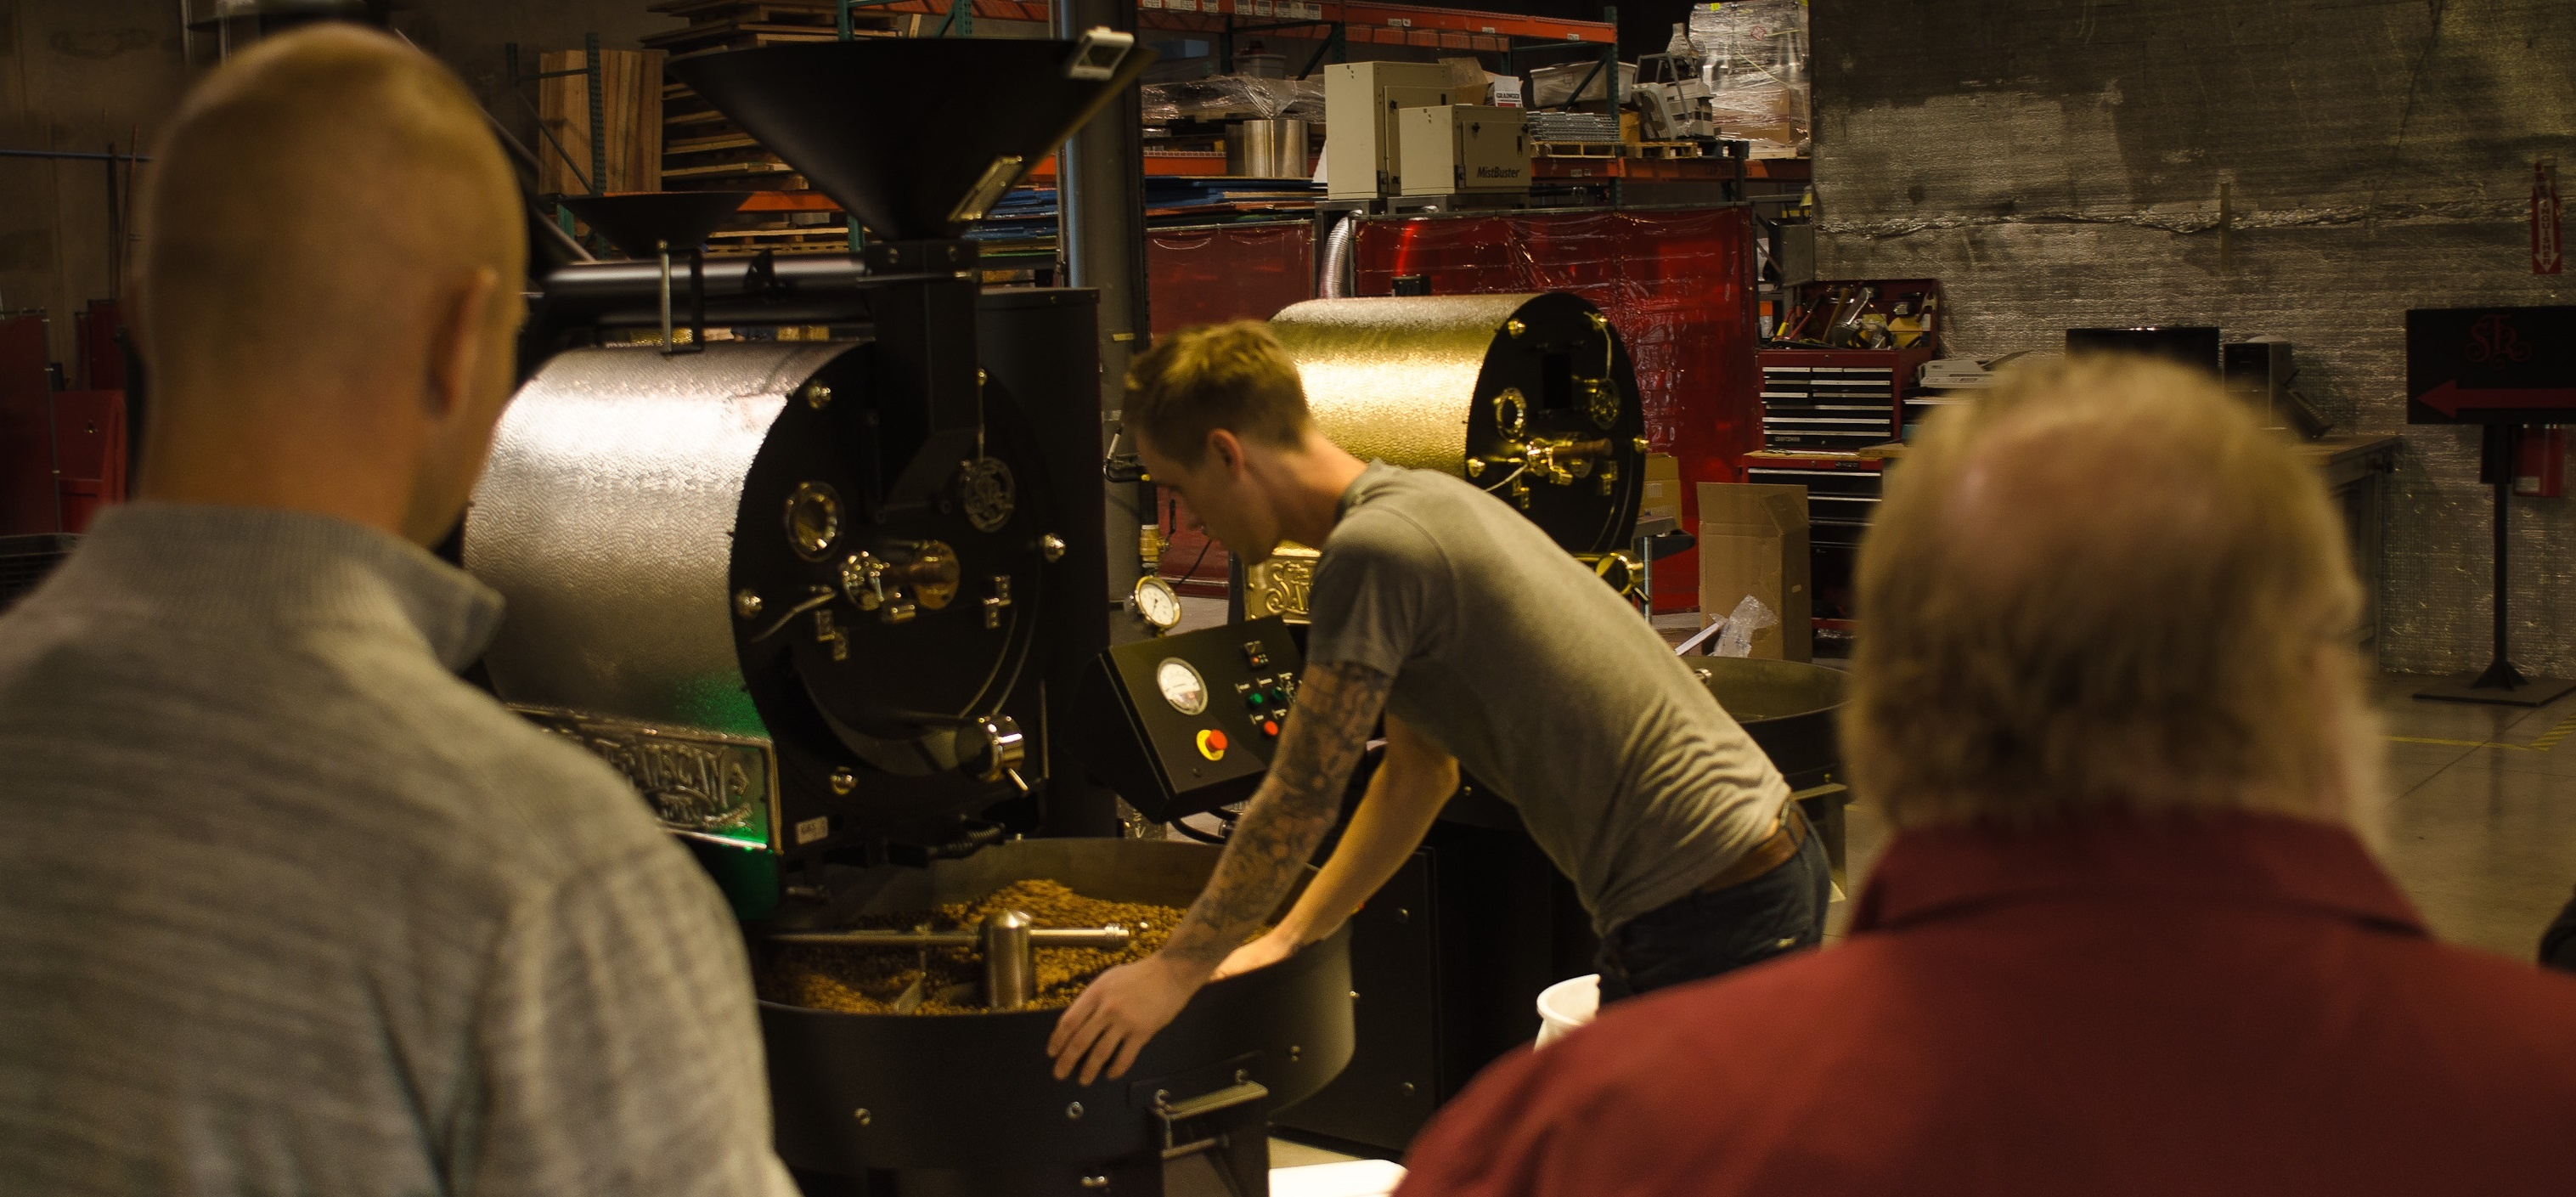 A San Franciscan Roaster roasting beans